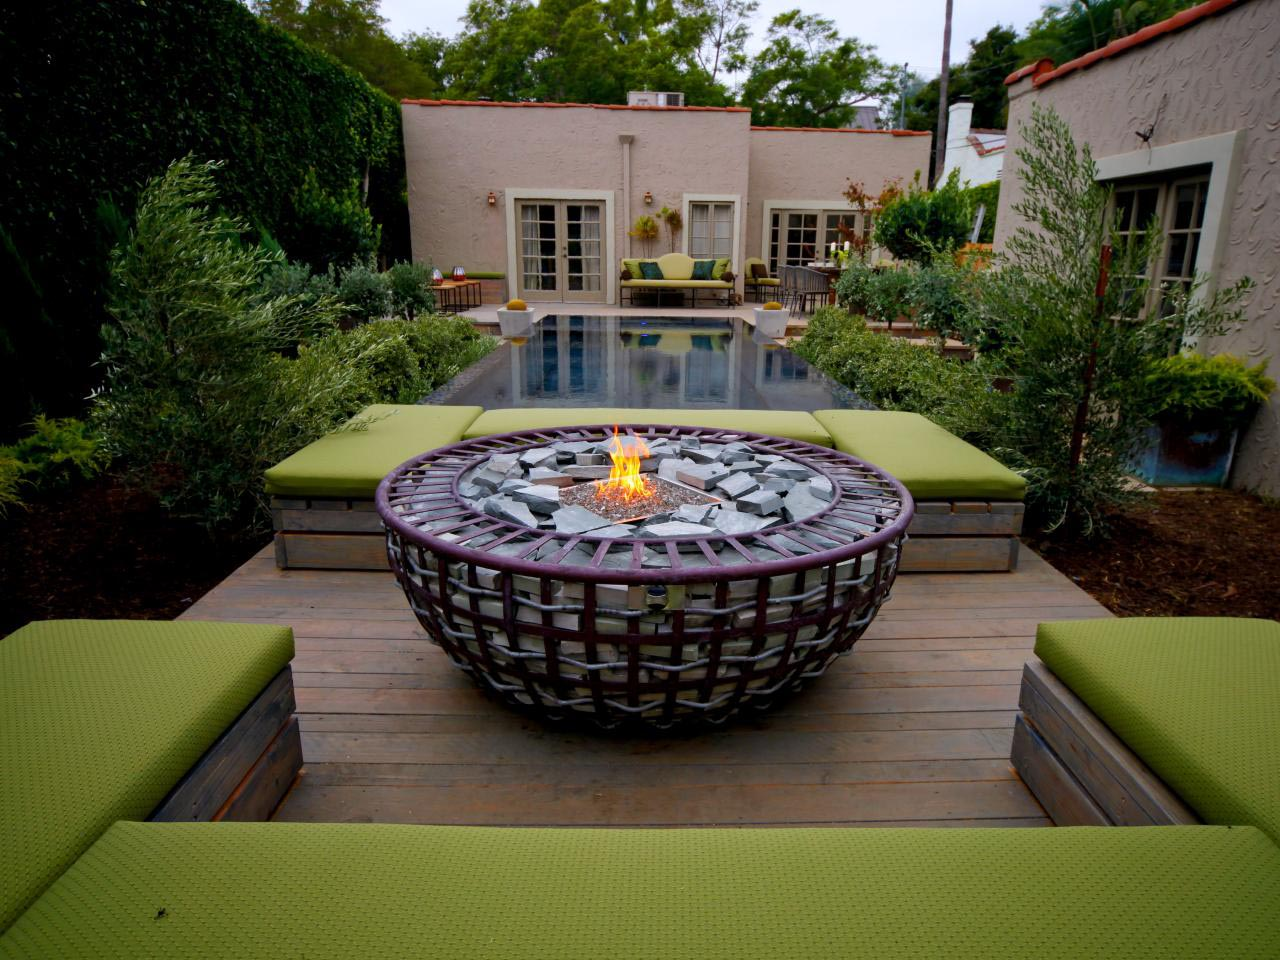 Simple backyard fire pit ideas fire pit design ideas for Simple back patio ideas